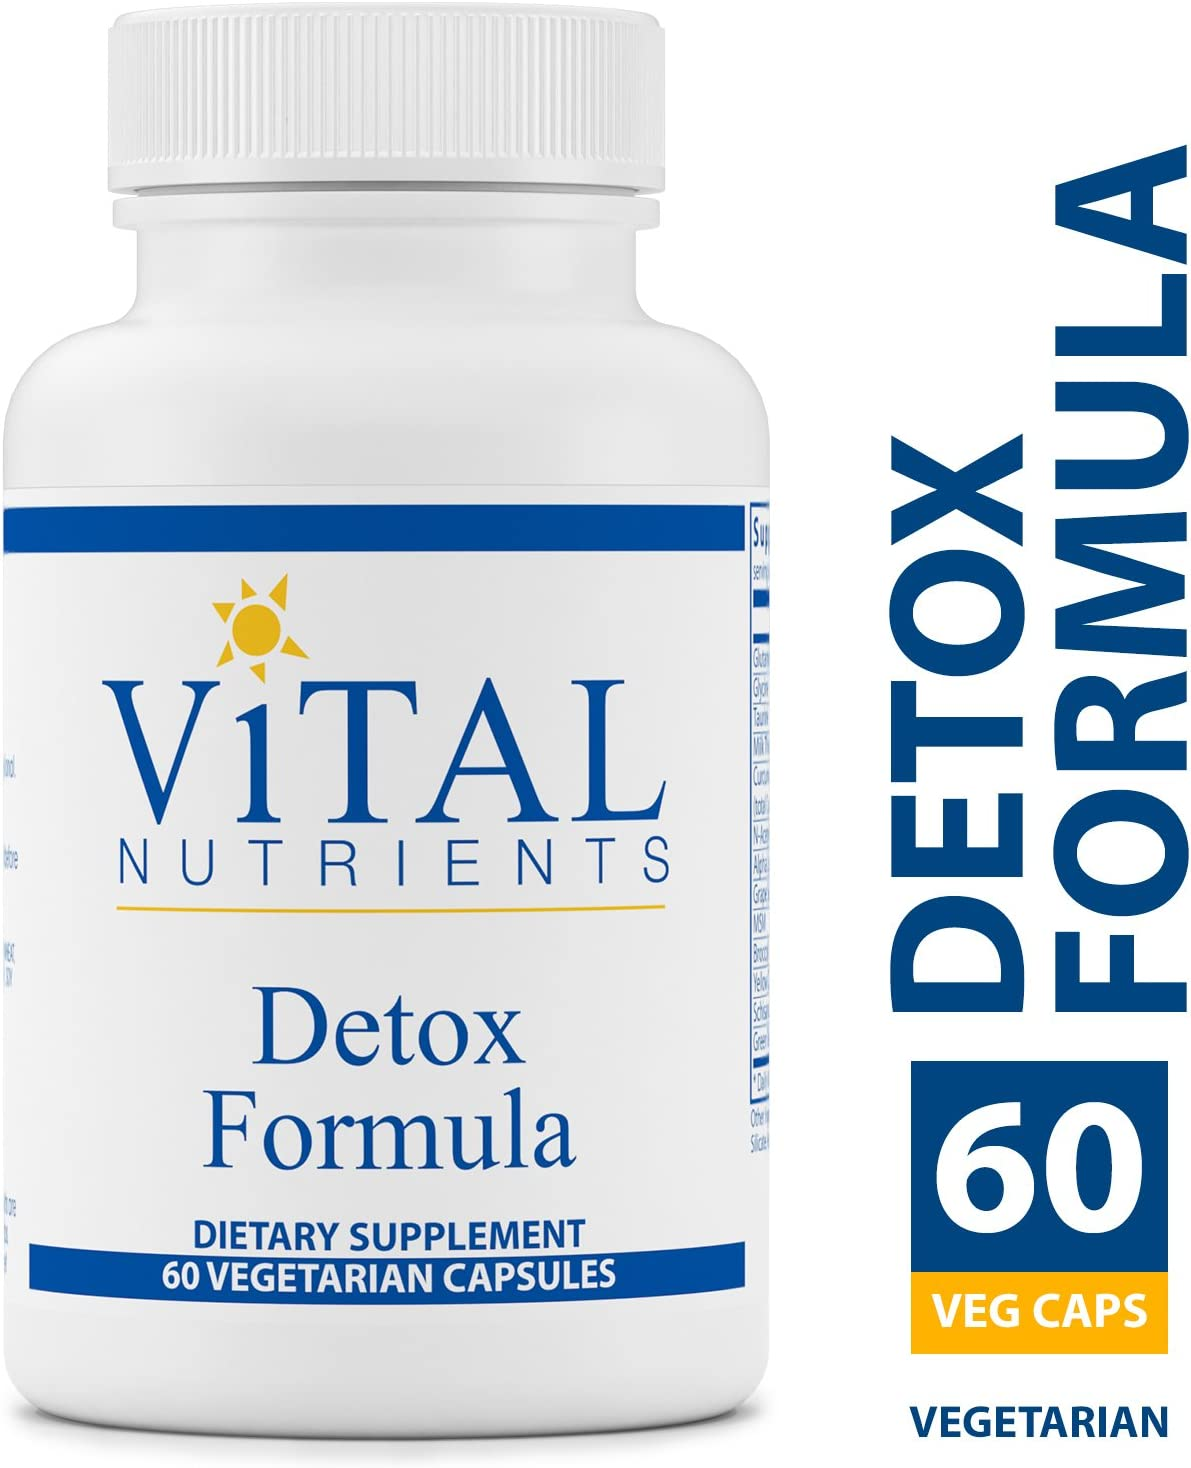 Vital Nutrients – Detox Formula – Specially Designed Formula for Liver and Detoxification Support – 60 Capsules per Bottle